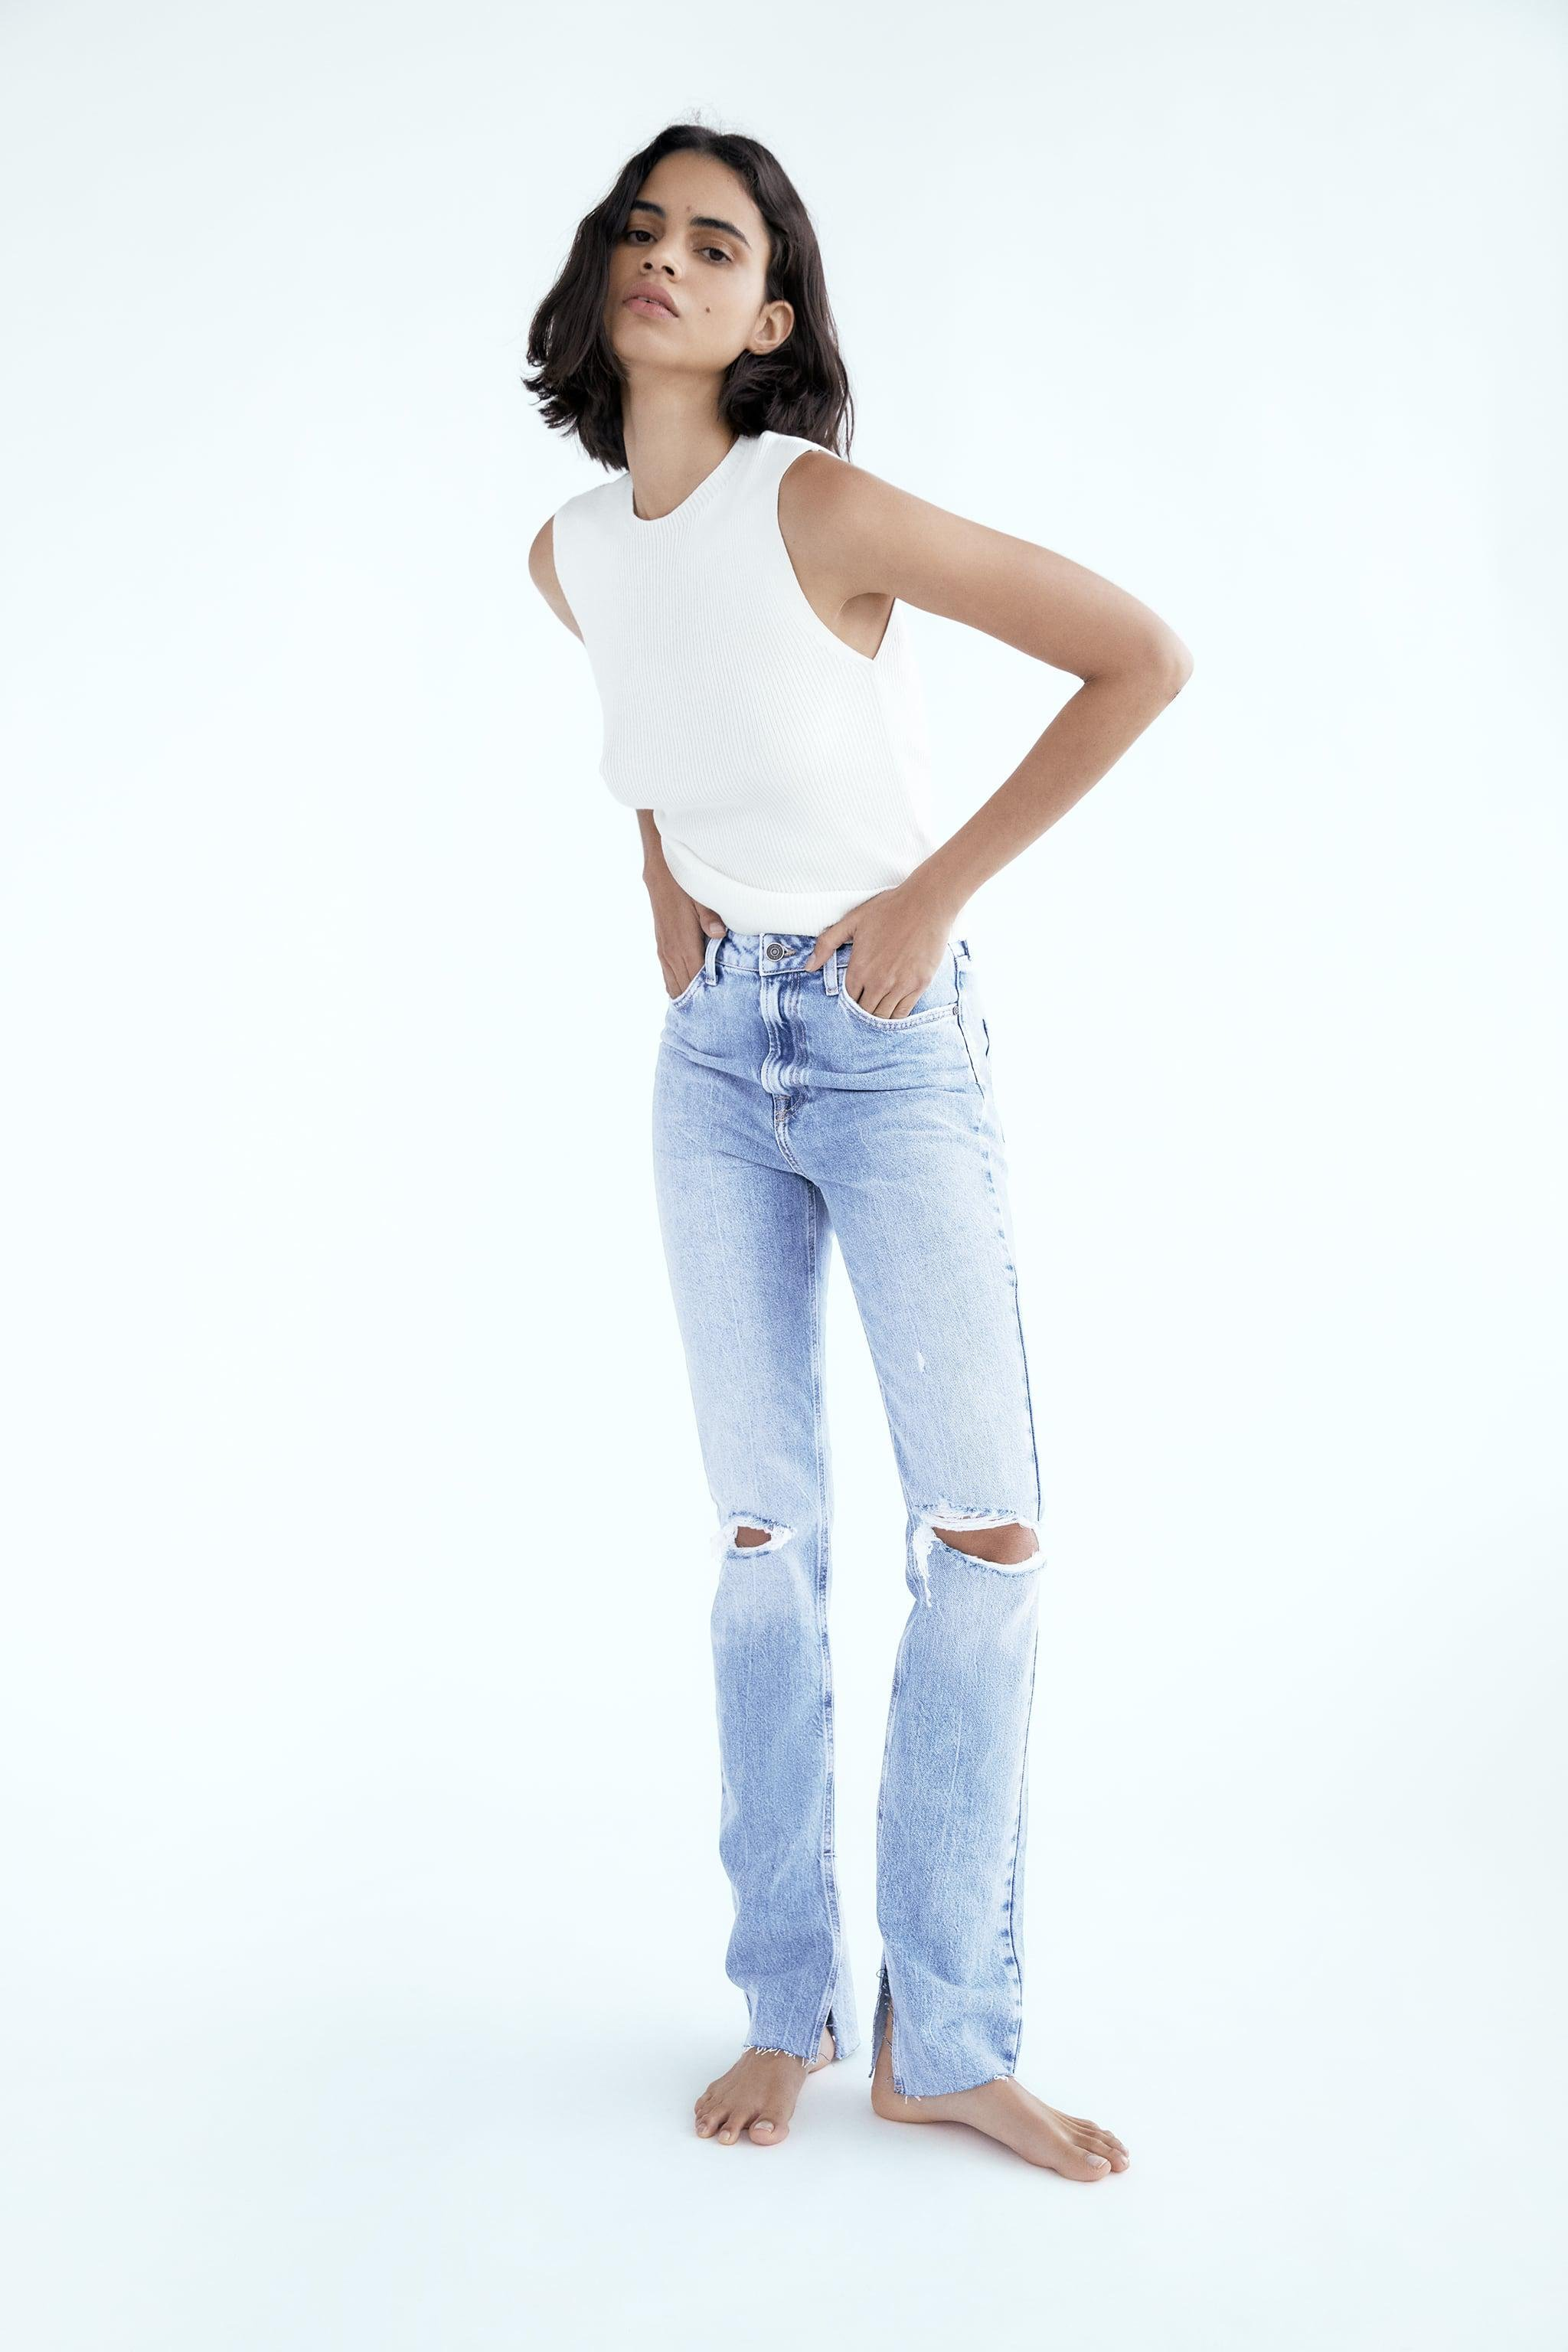 Z1975 FLARED RIPPED SLIM FIT JEANS